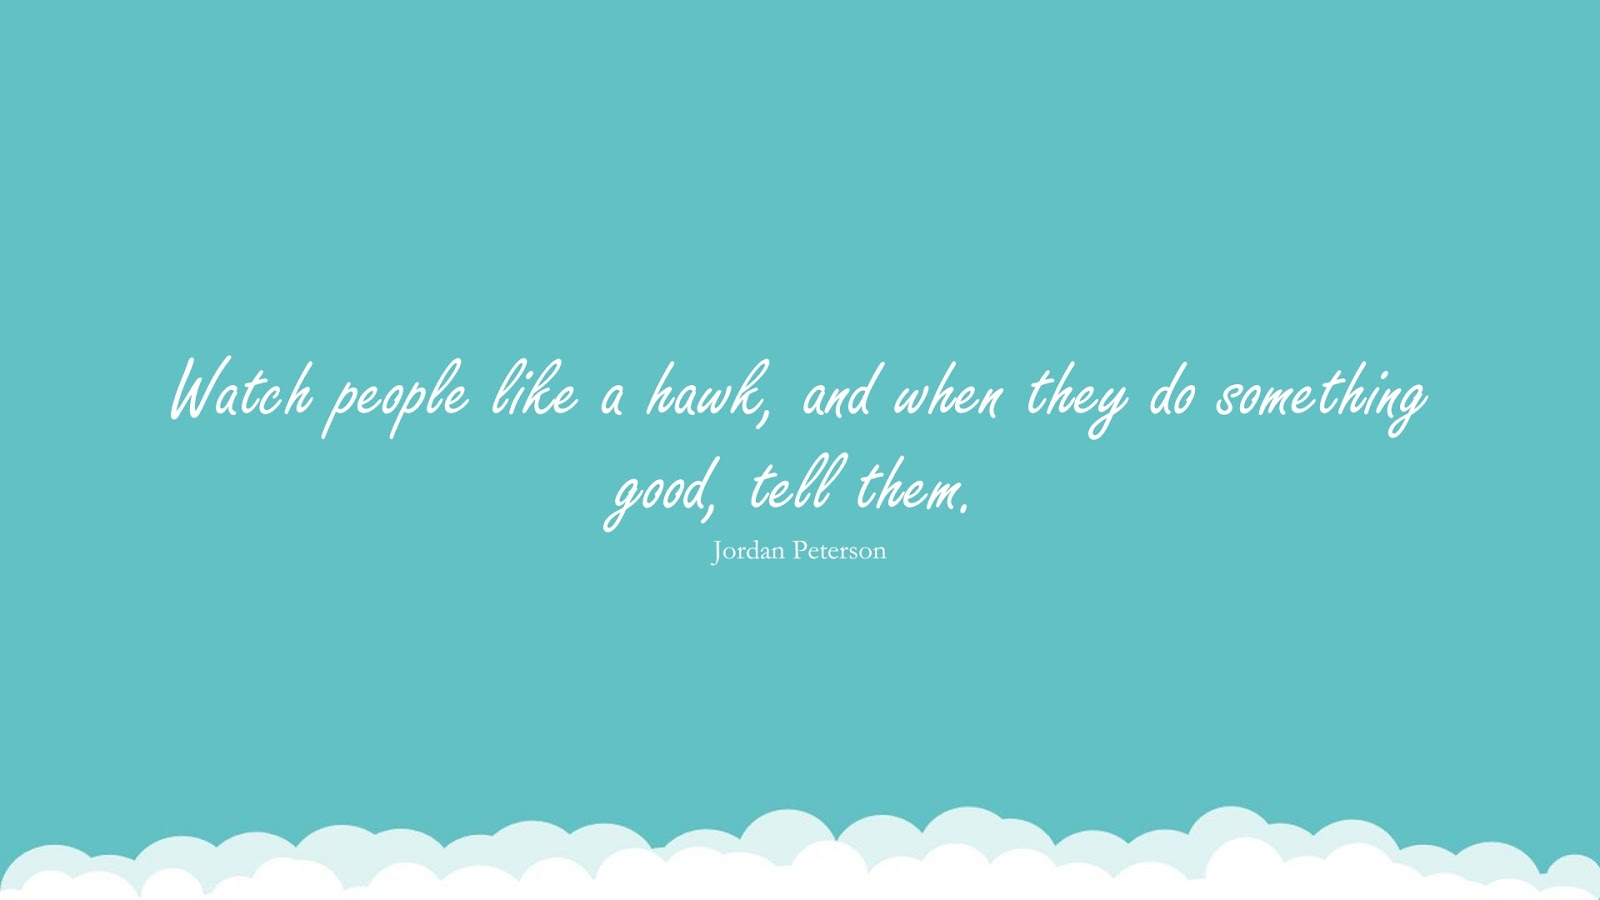 Watch people like a hawk, and when they do something good, tell them. (Jordan Peterson);  #RelationshipQuotes